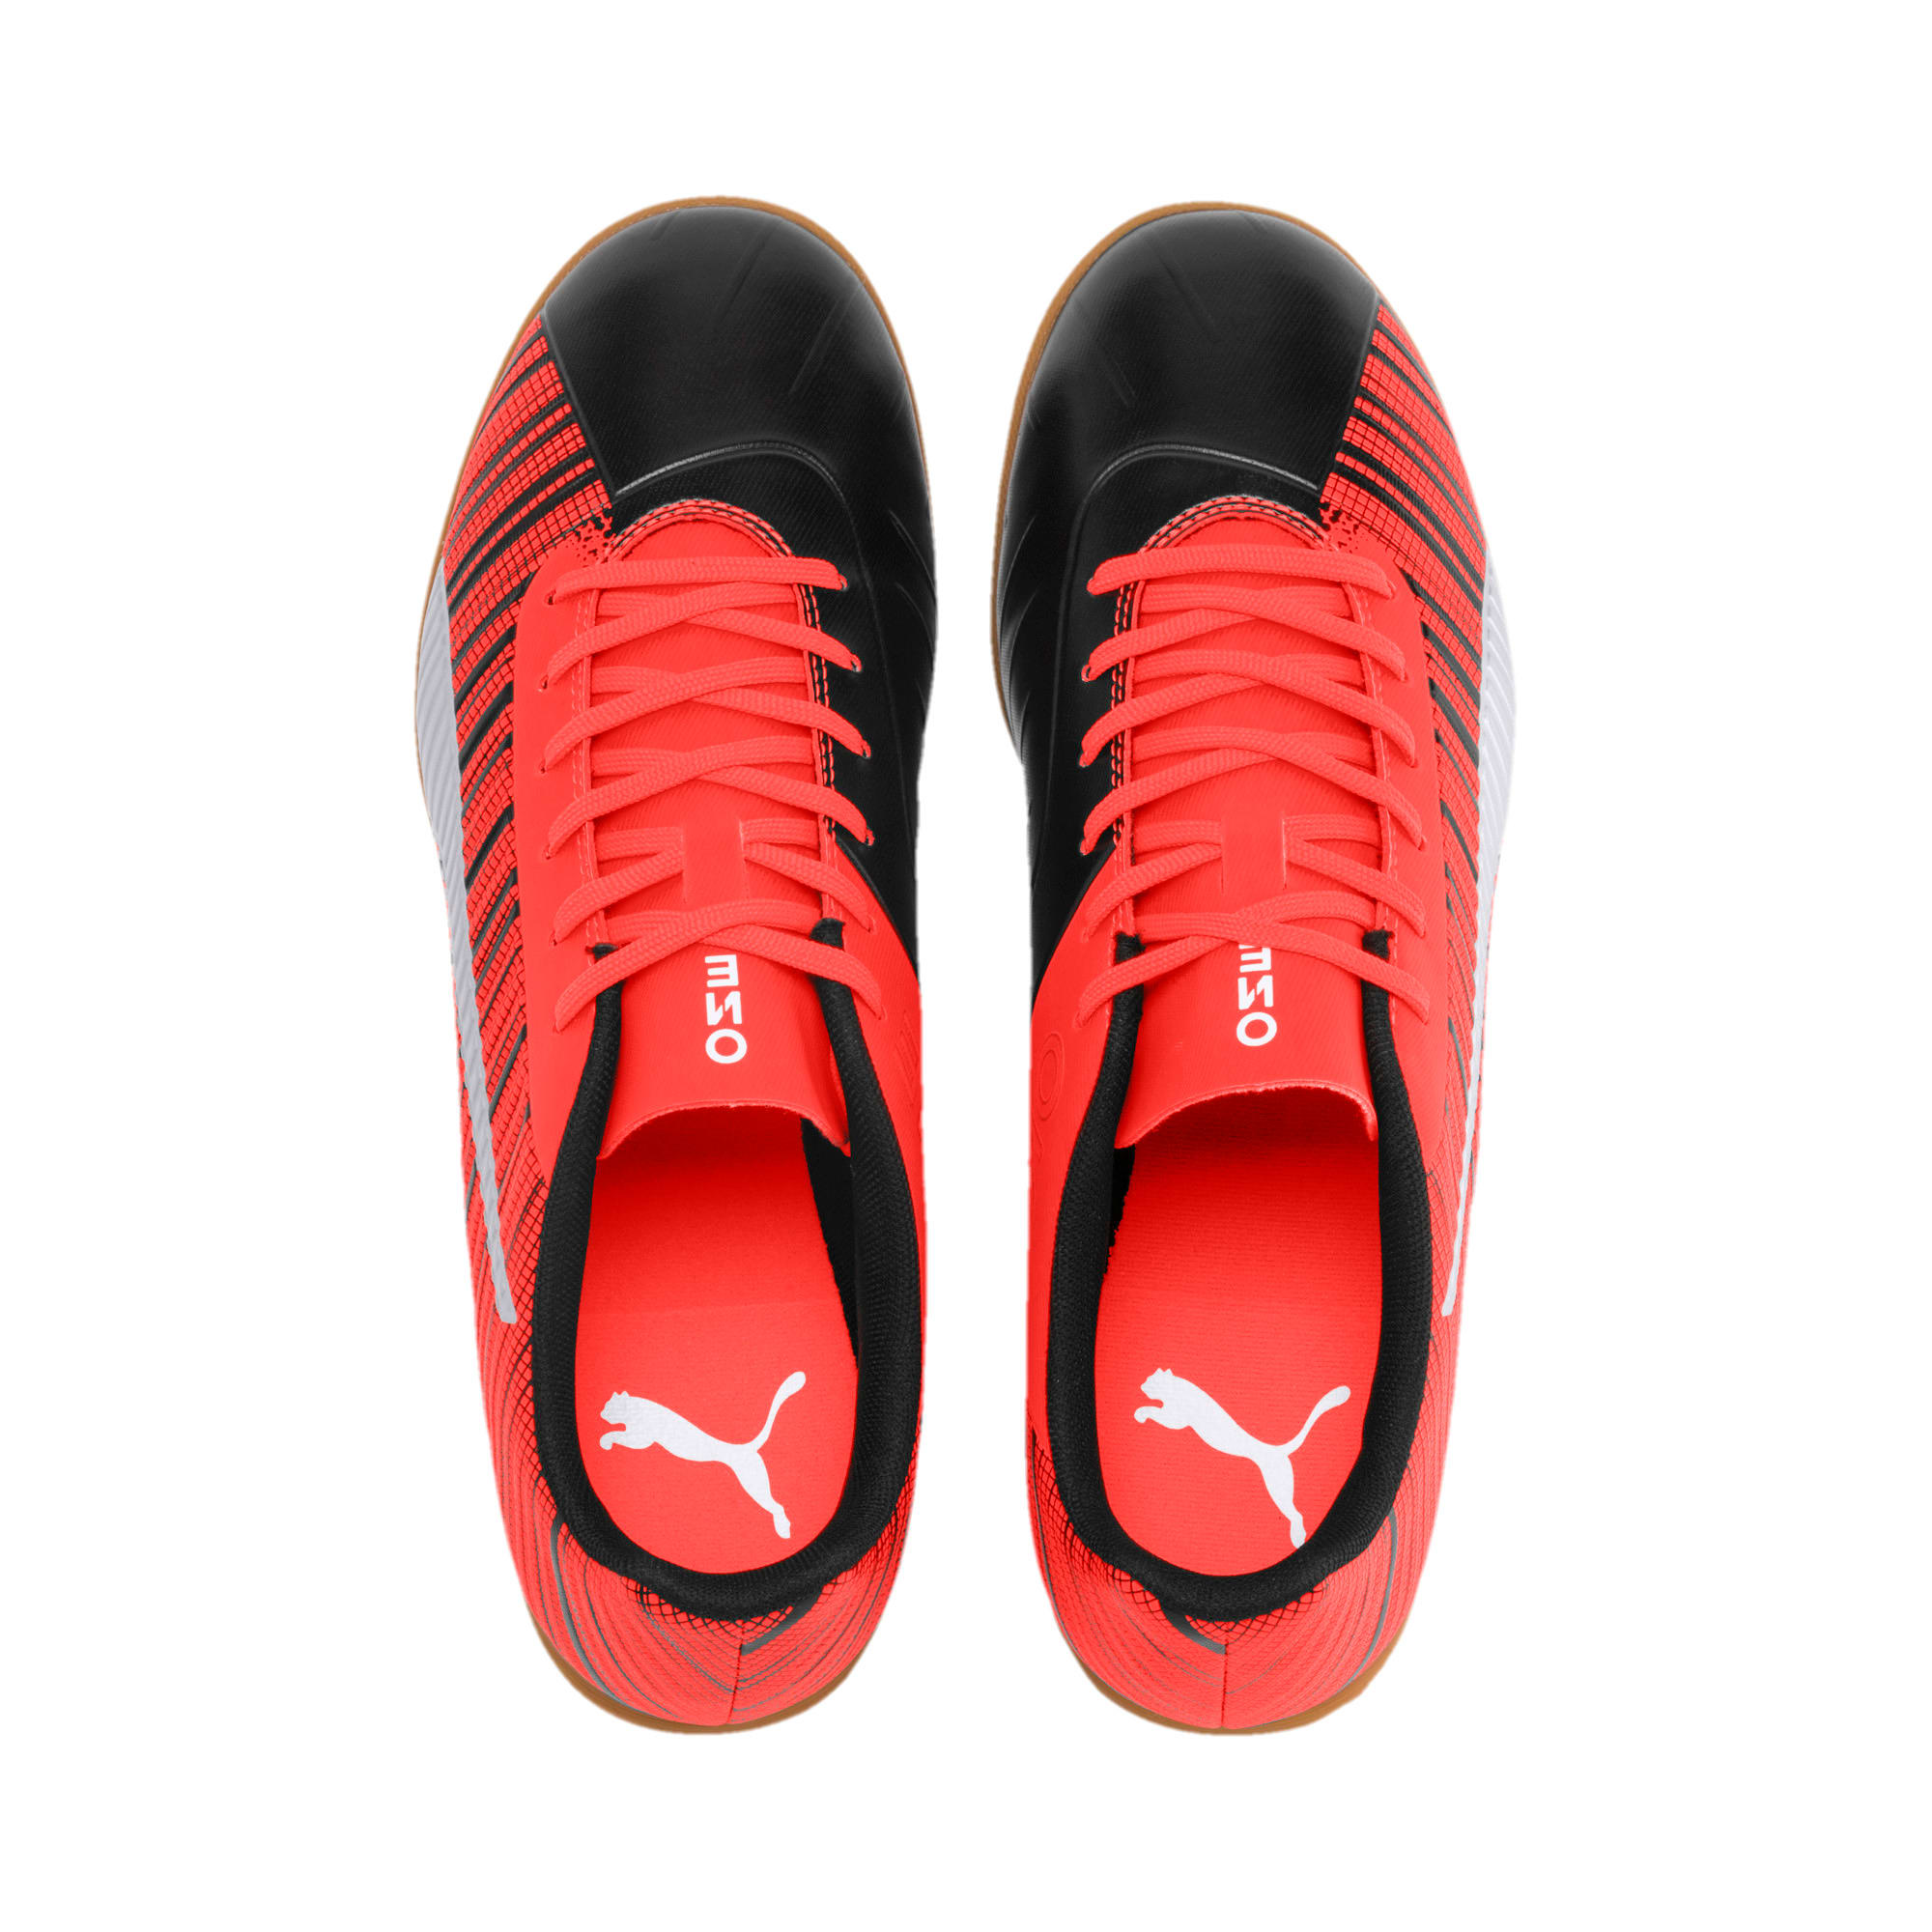 Thumbnail 7 of PUMA ONE 5.4 IT Men's Soccer Shoes, Black-Red-Silver-Gum, medium